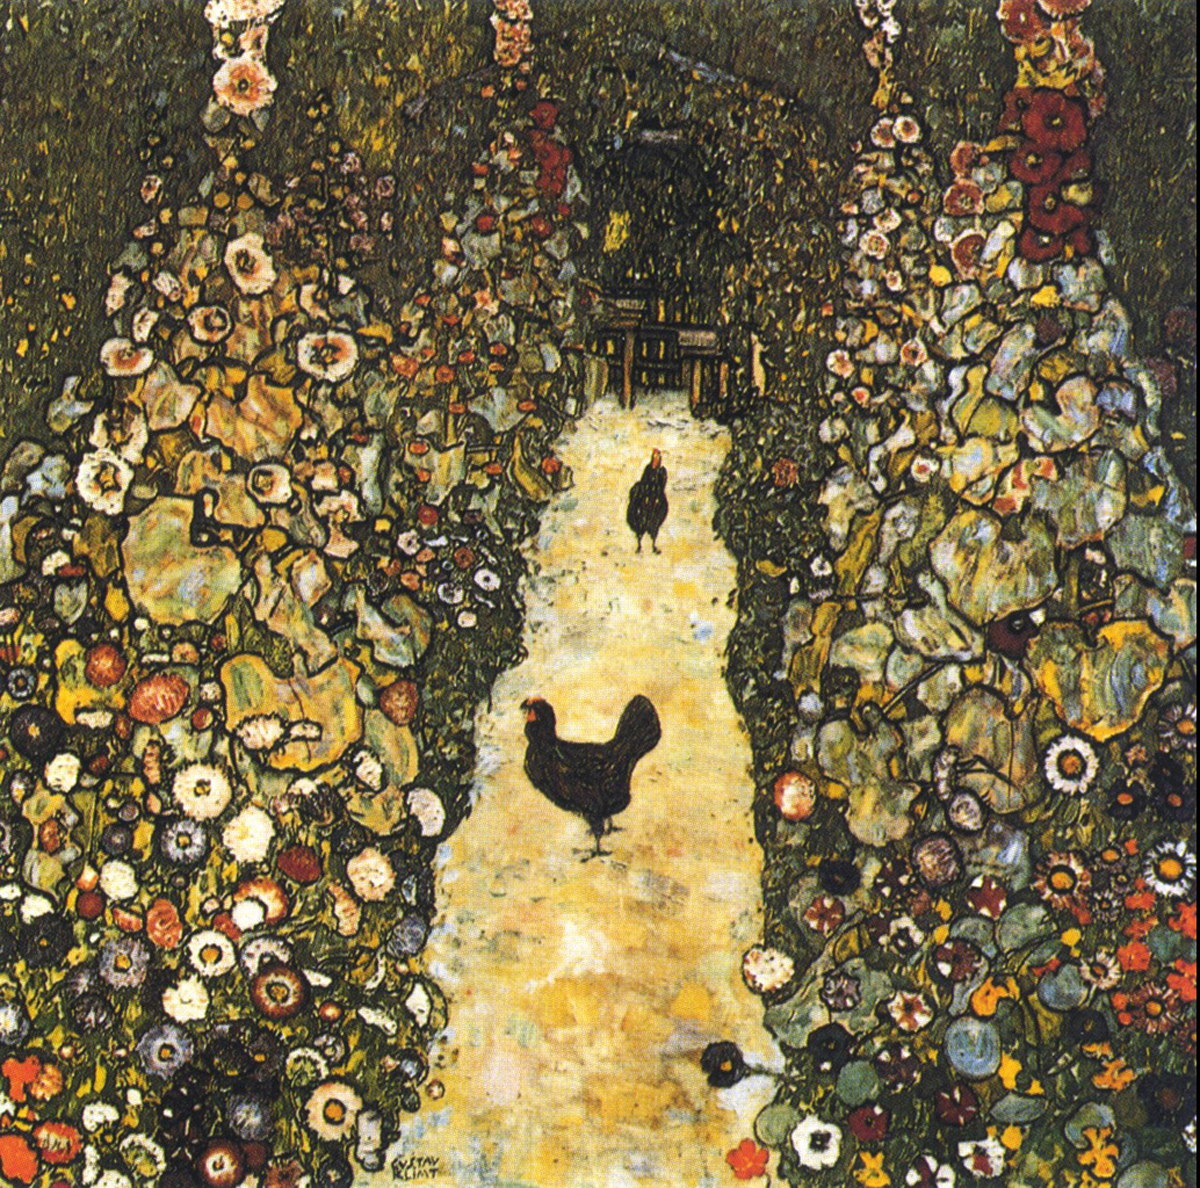 Gustav Klimt (July 14, 1862 – February 6, 1918) Garden Path with Chickens Oil on canvas, 1916 110 × 110 cm (43.3 × 43.3 in) Destroyed Vienna